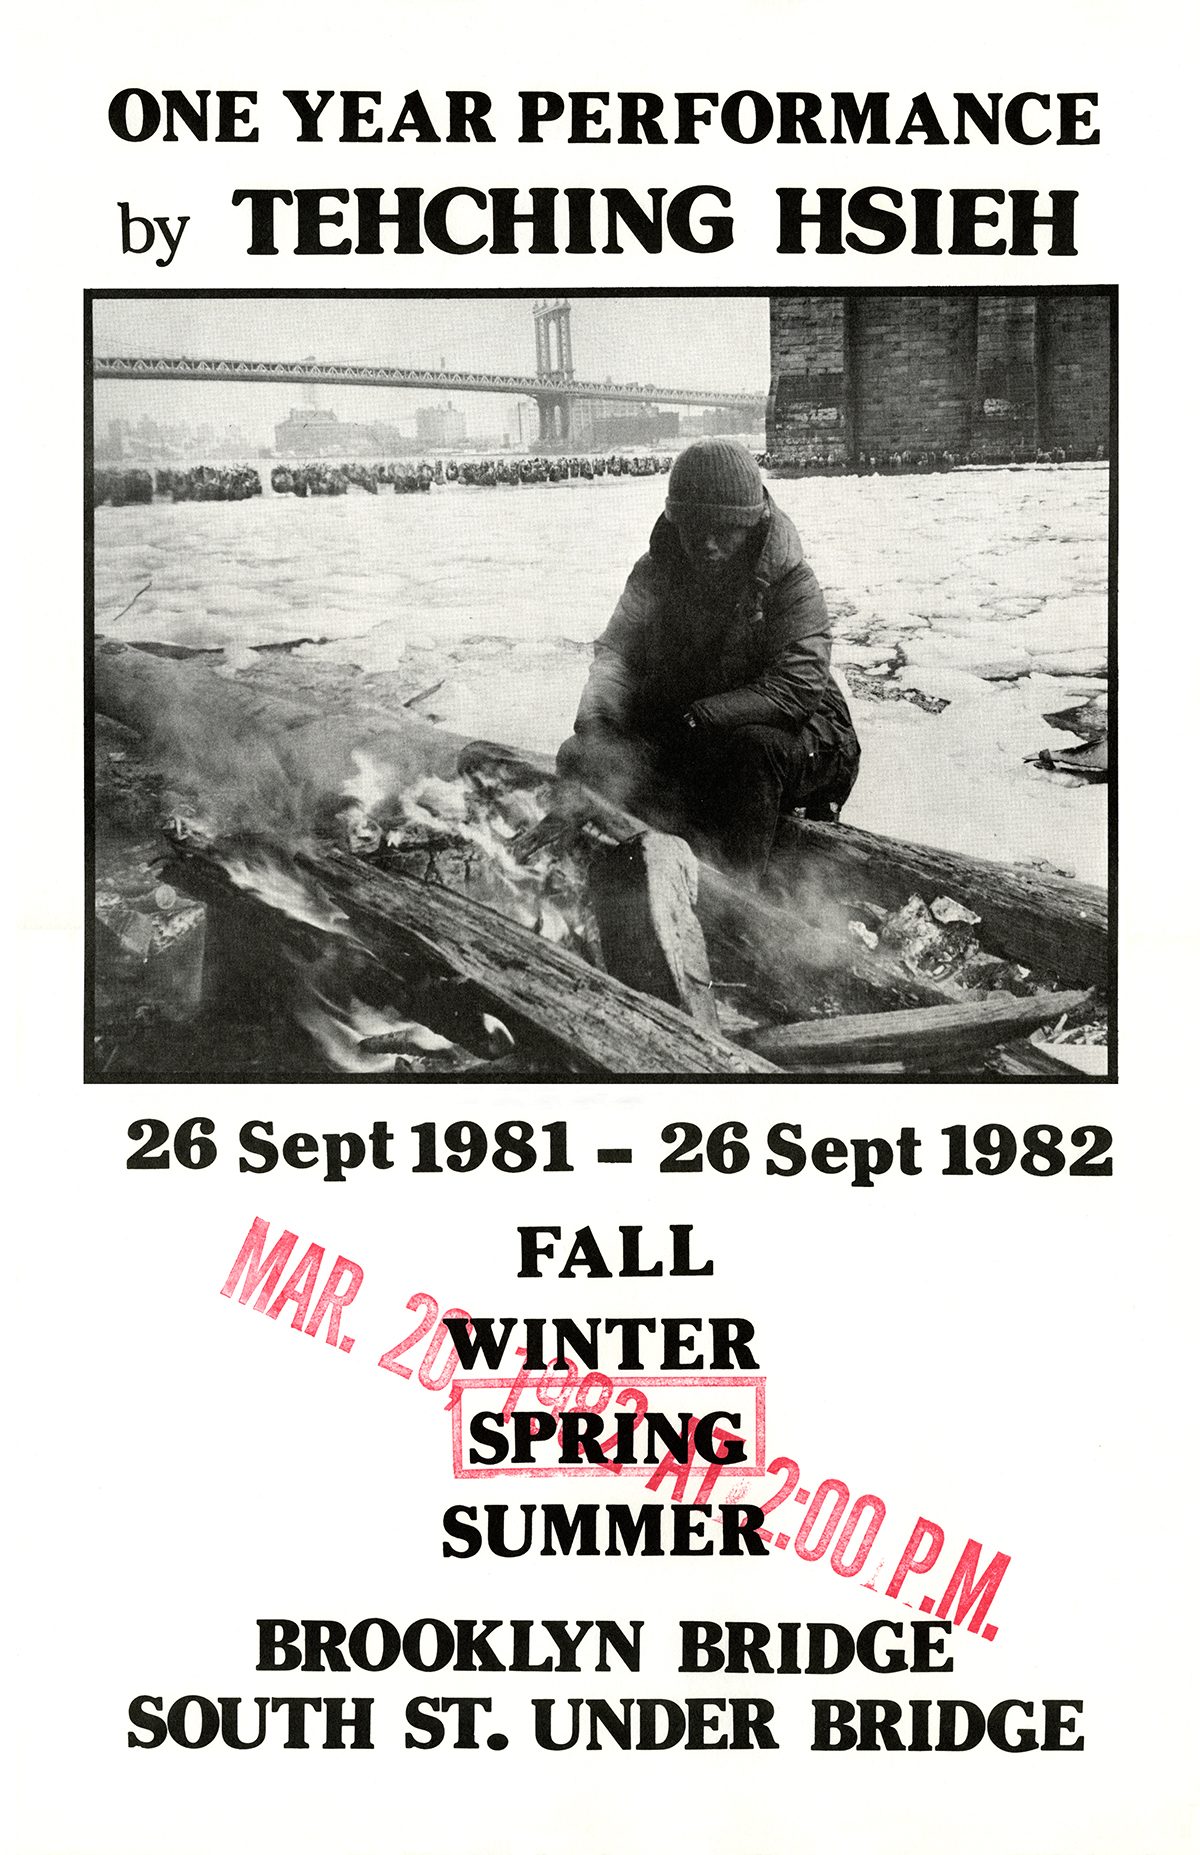 One Year Performance 1981-1982 (Outdoor Piece, Spring poster)